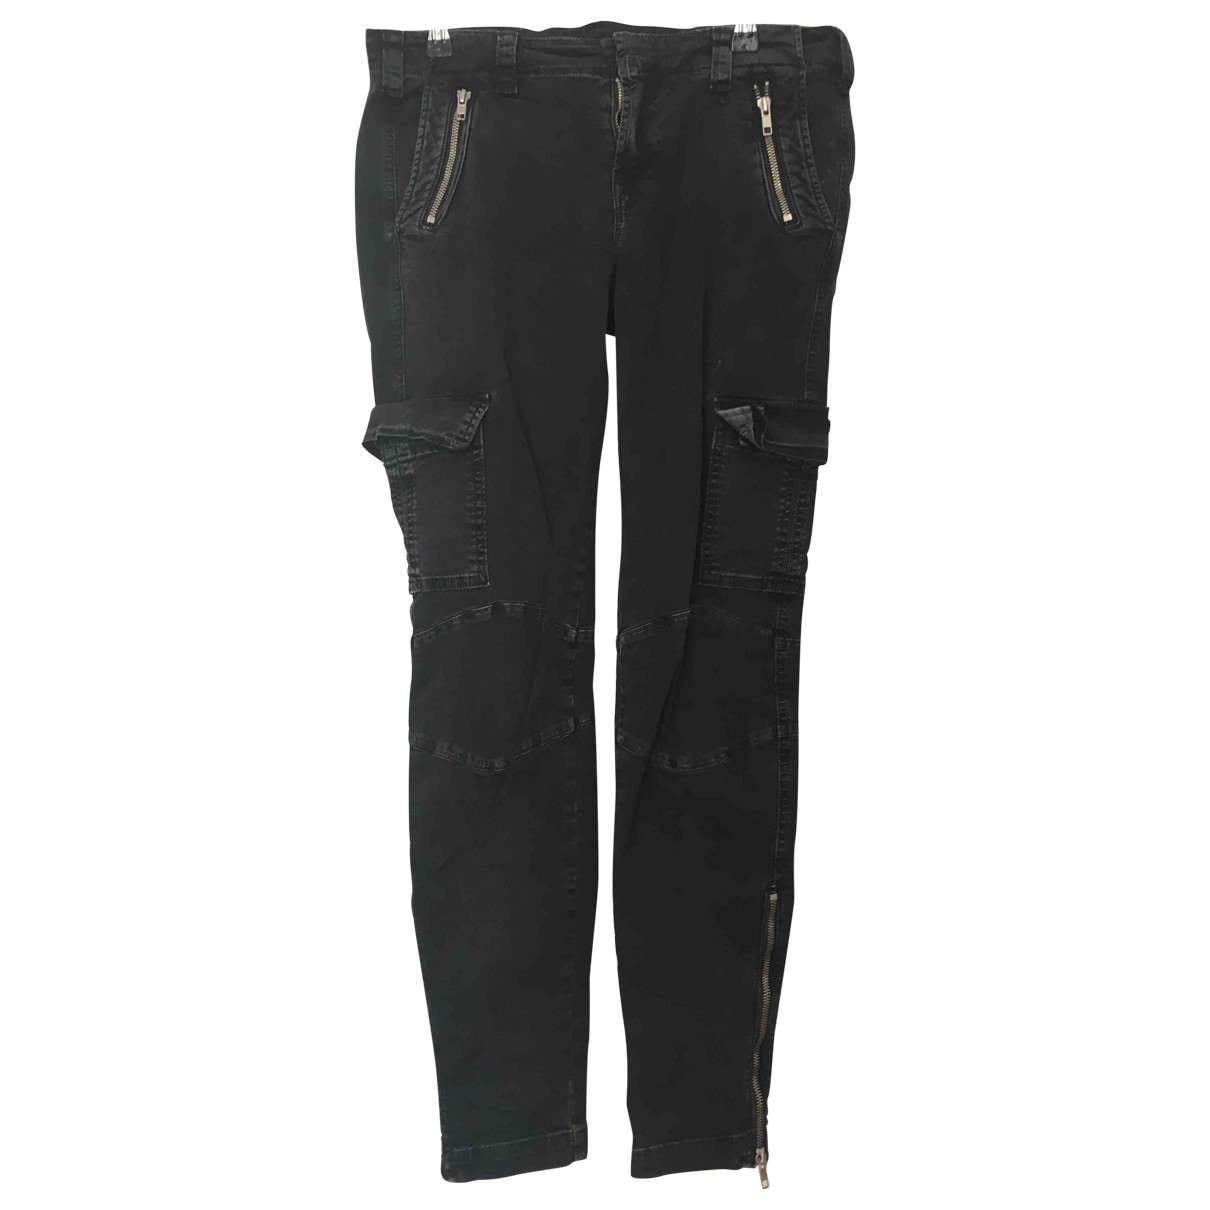 J Brand \N Black Cotton Trousers for Women 8 US